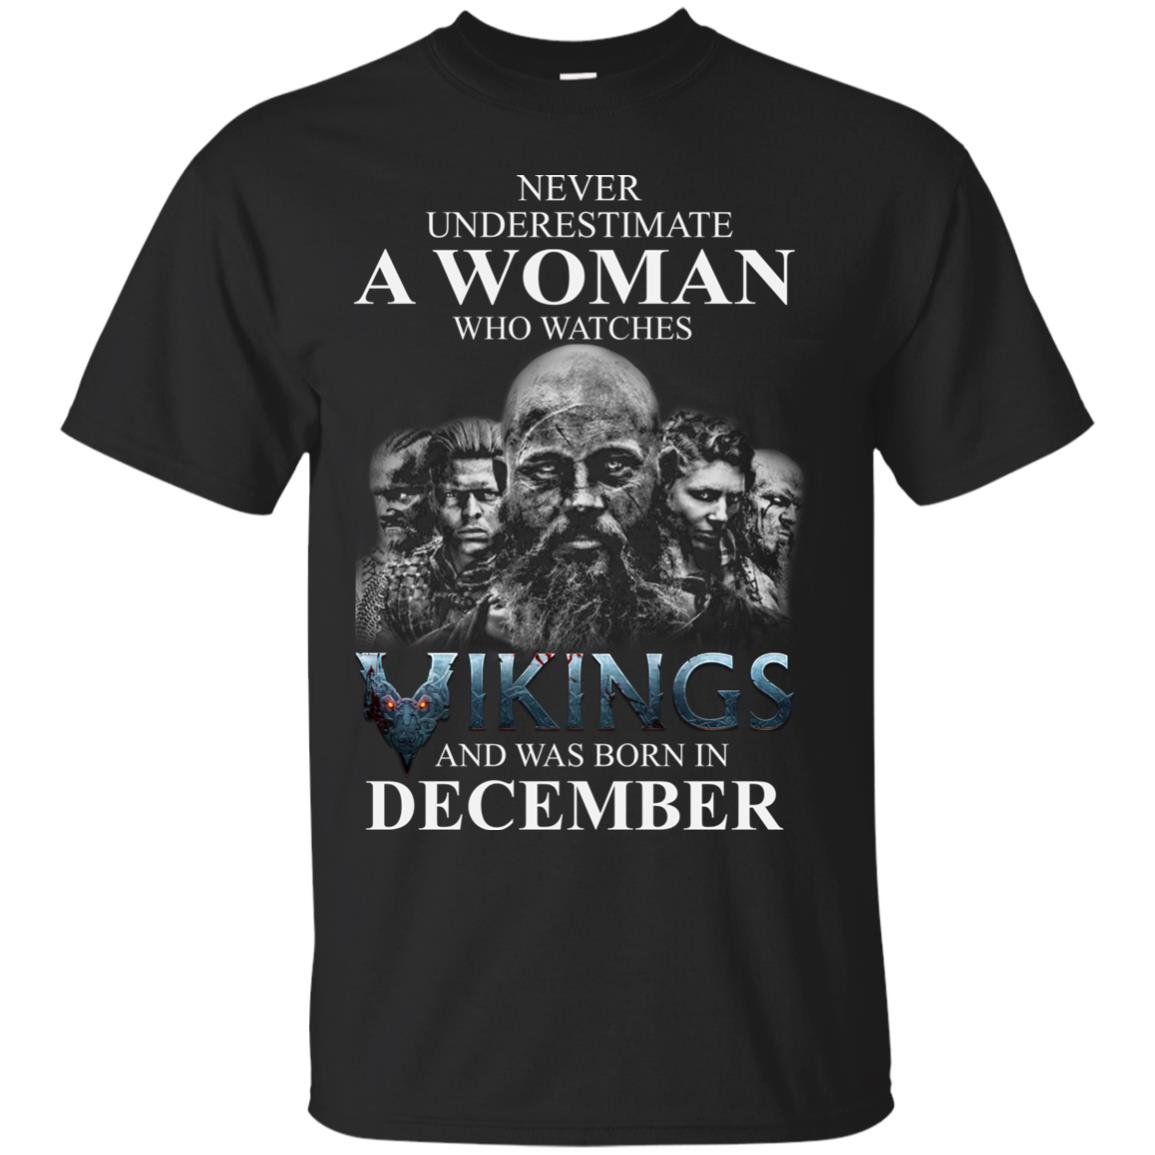 image 1219 - Never Underestimate A woman who watches Vikings and was born in December shirt